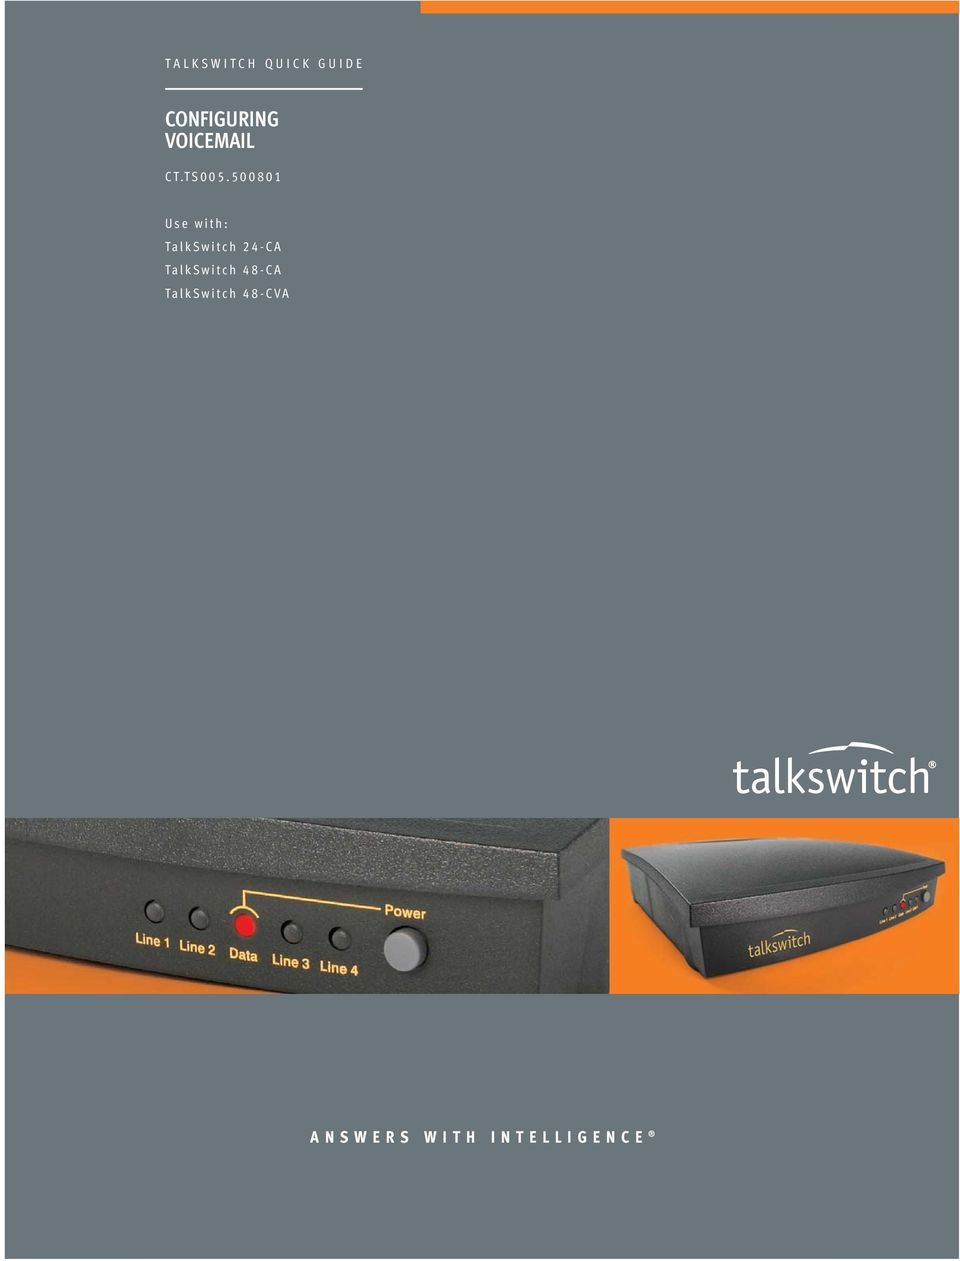 500801 Use with: TalkSwitch 24-A